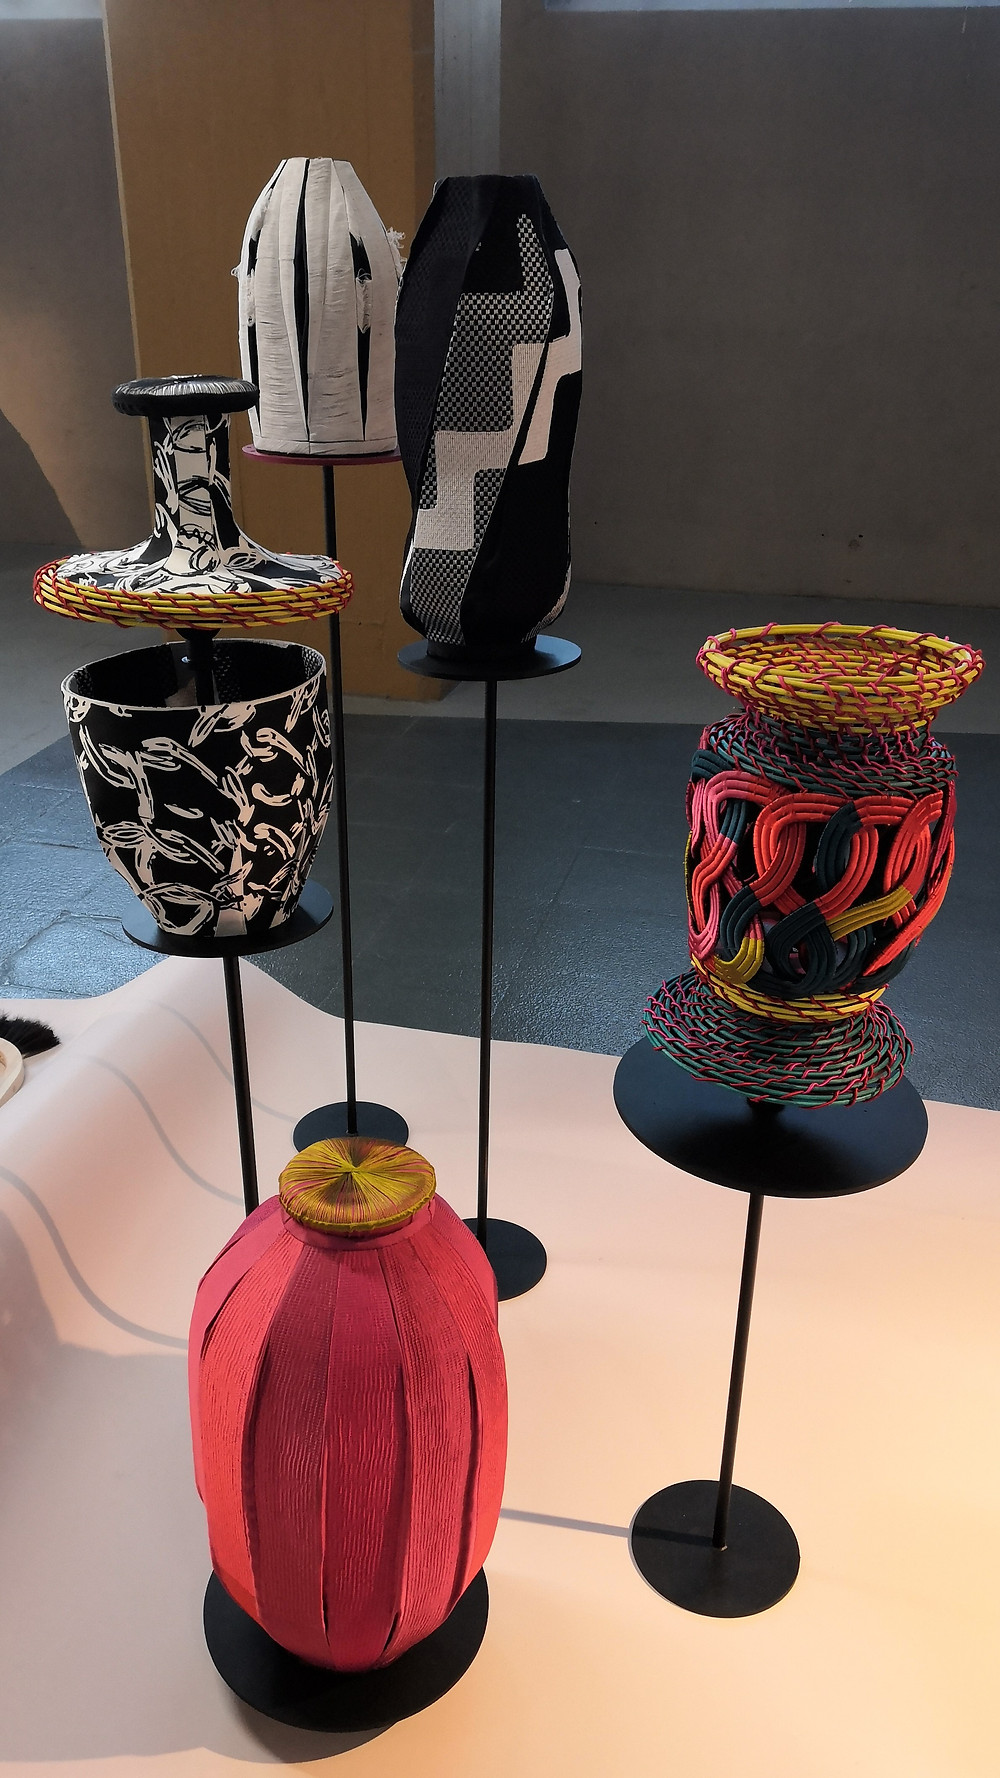 Black, white and red baskets with woven, embroidered and printed patterns